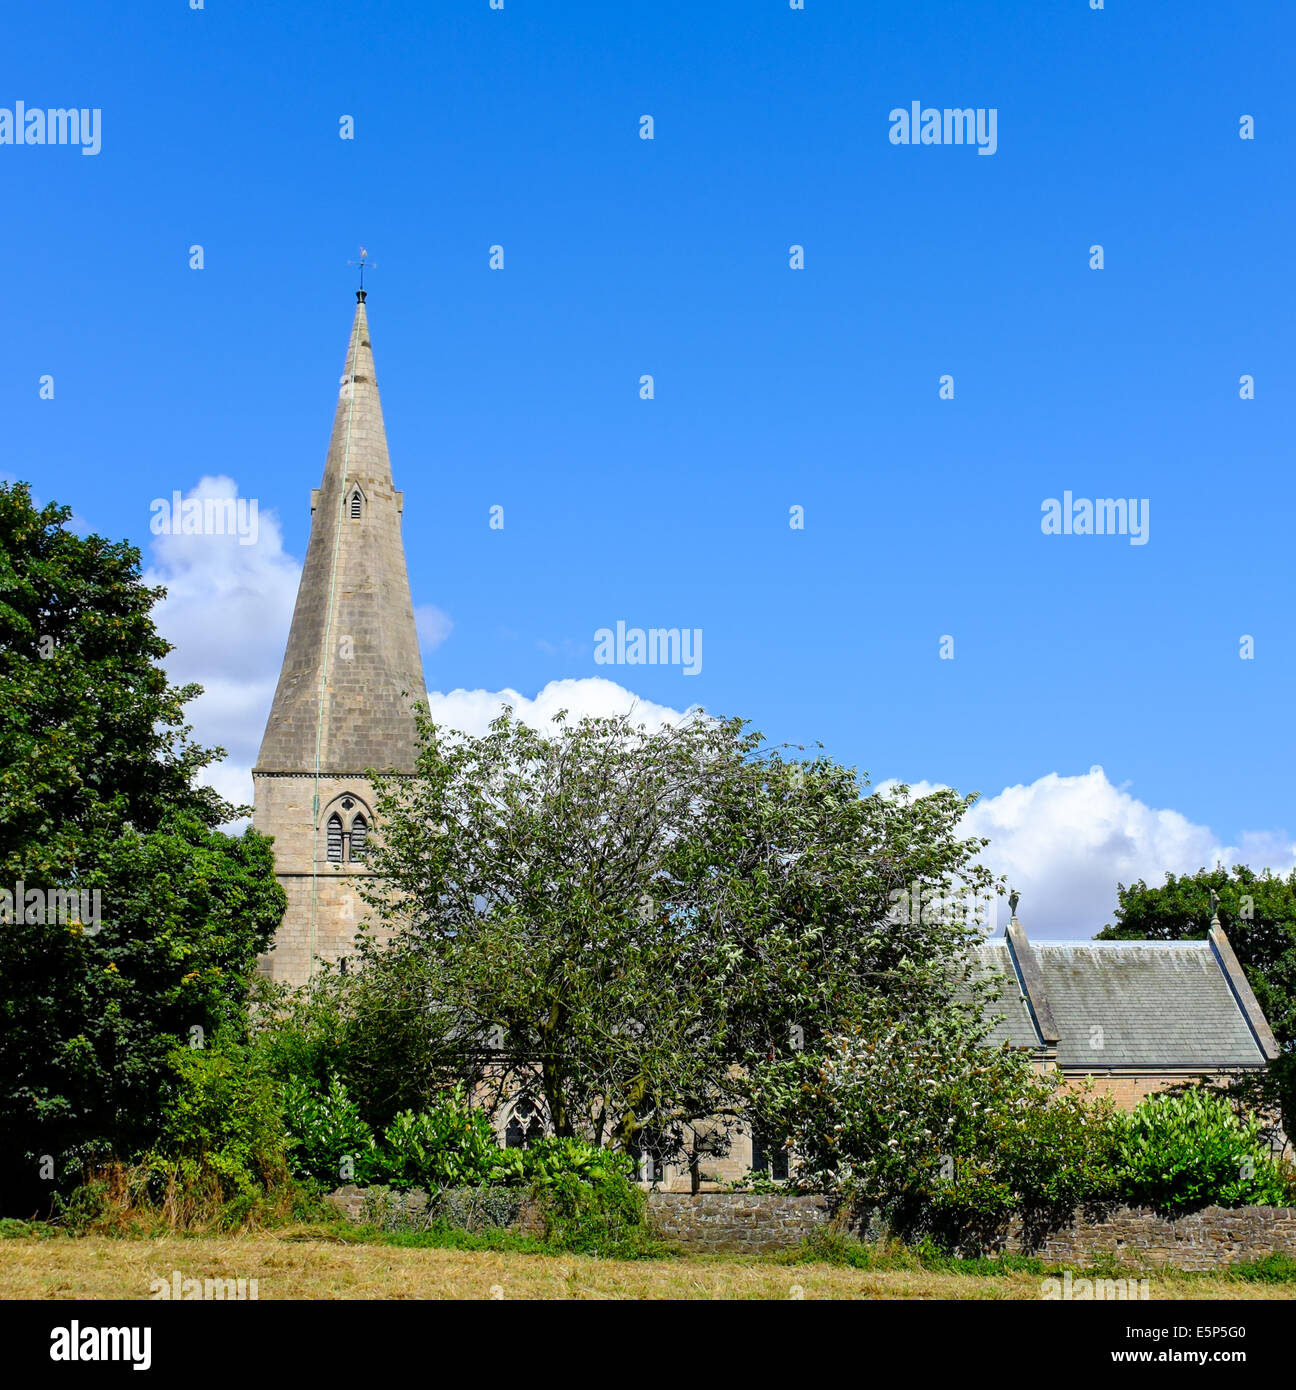 View of St Wilfrid's Church, Kirkby In Ashfield, Nottinghamshire, England. - Stock Image